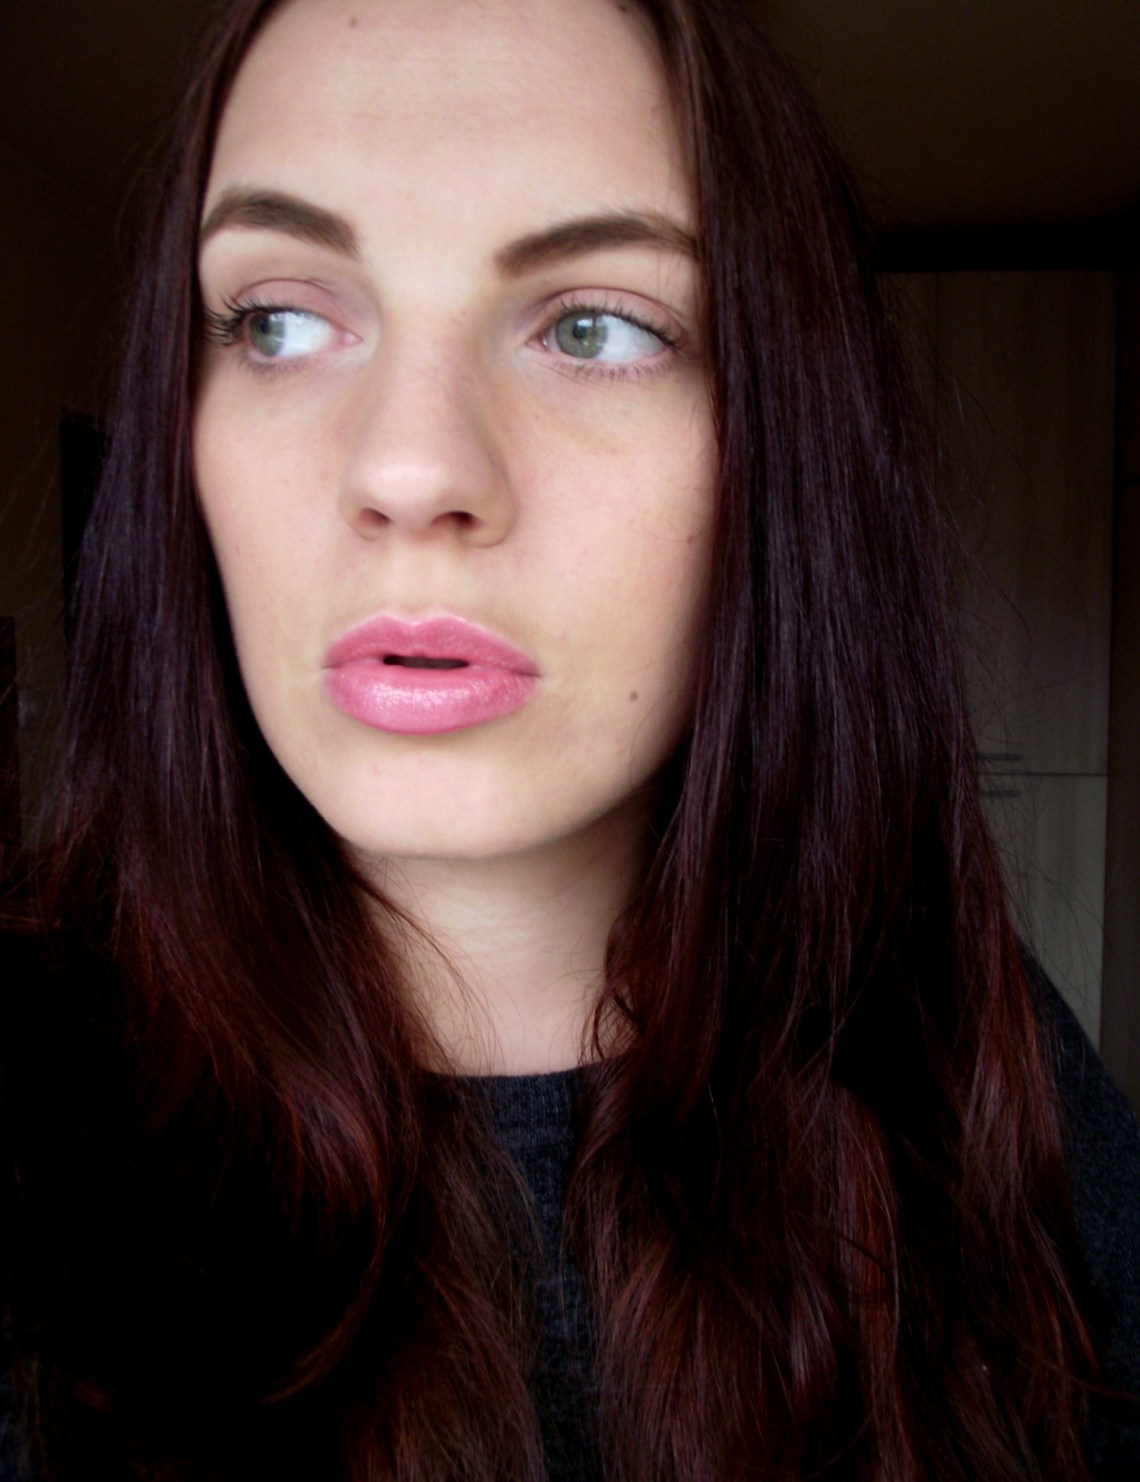 quick 10 minutes make-up look (2)